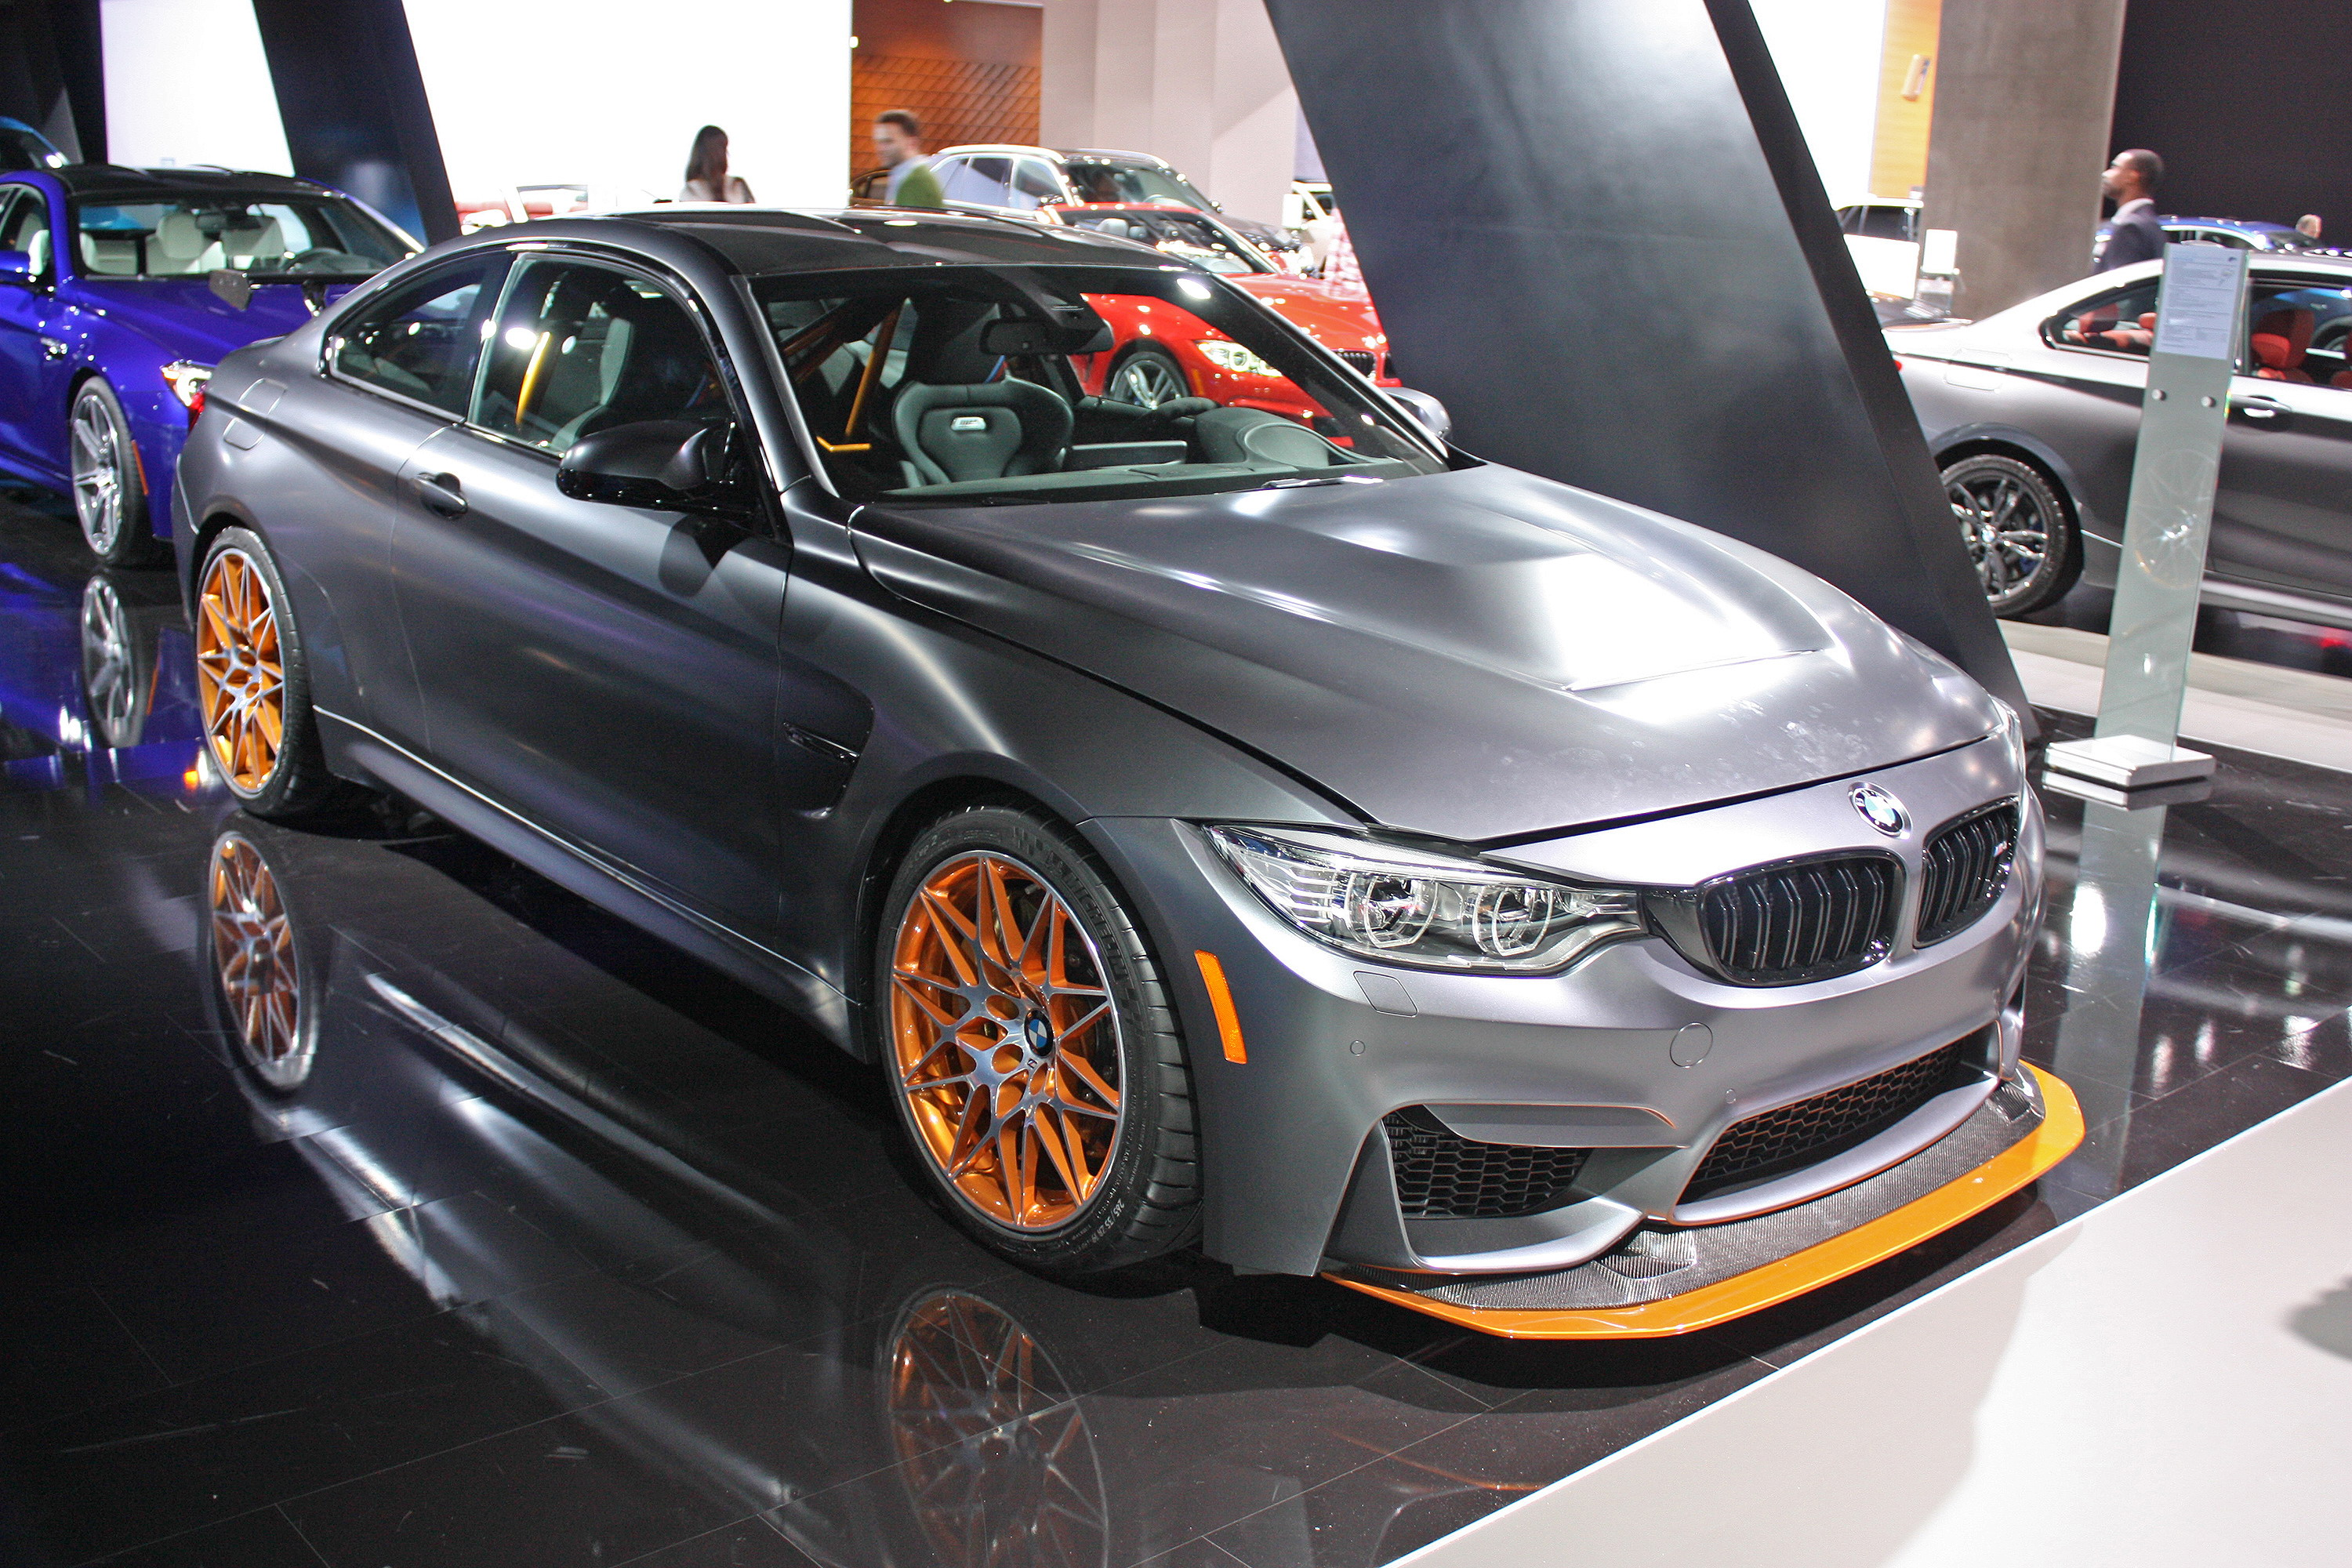 2016 bmw m4 gts gallery 656864 top speed. Black Bedroom Furniture Sets. Home Design Ideas